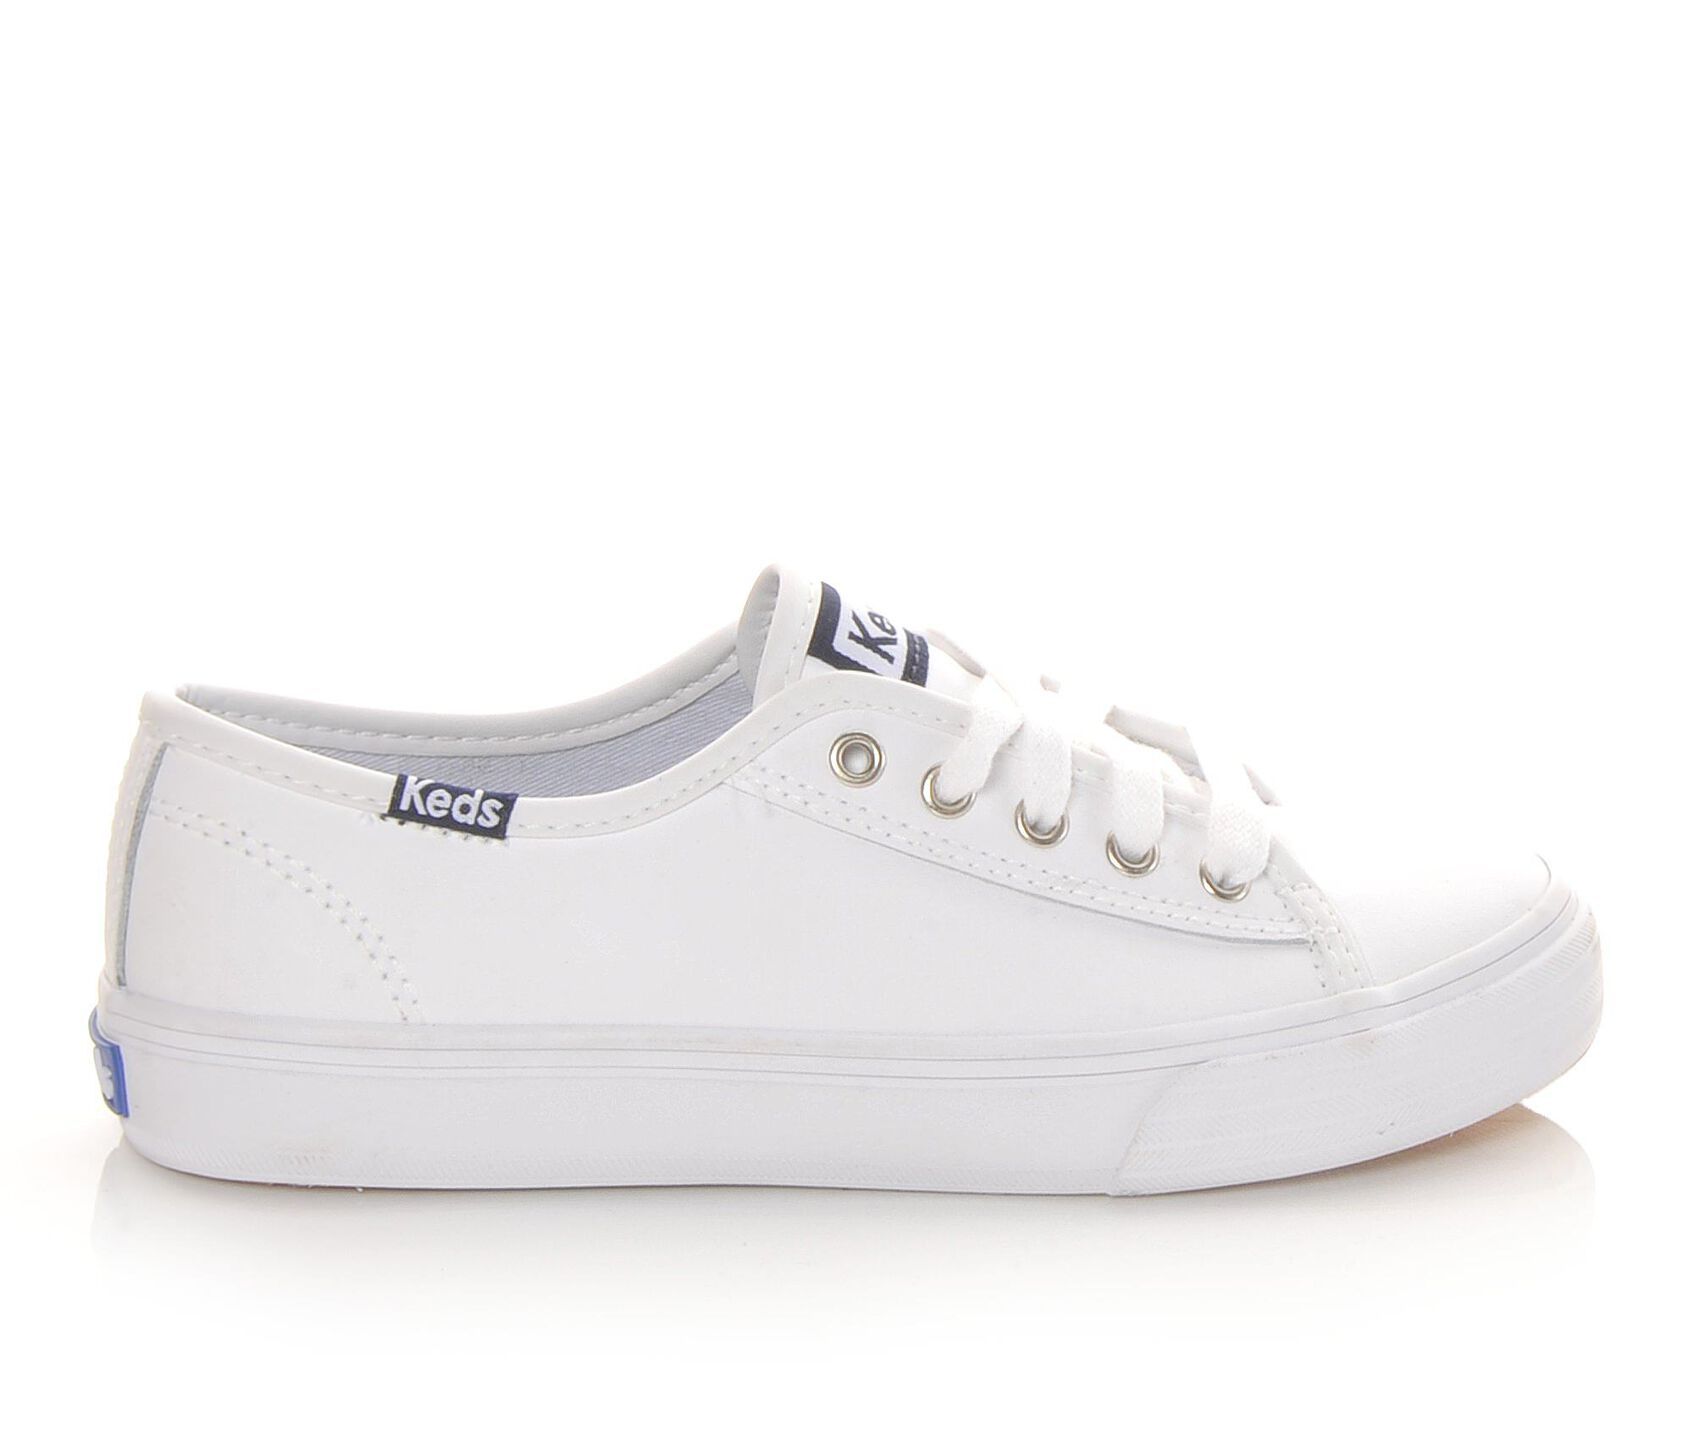 ... Keds Little Kid  amp  Big Kid Double Up Leather Sneakers. Previous 5b52ea8fc